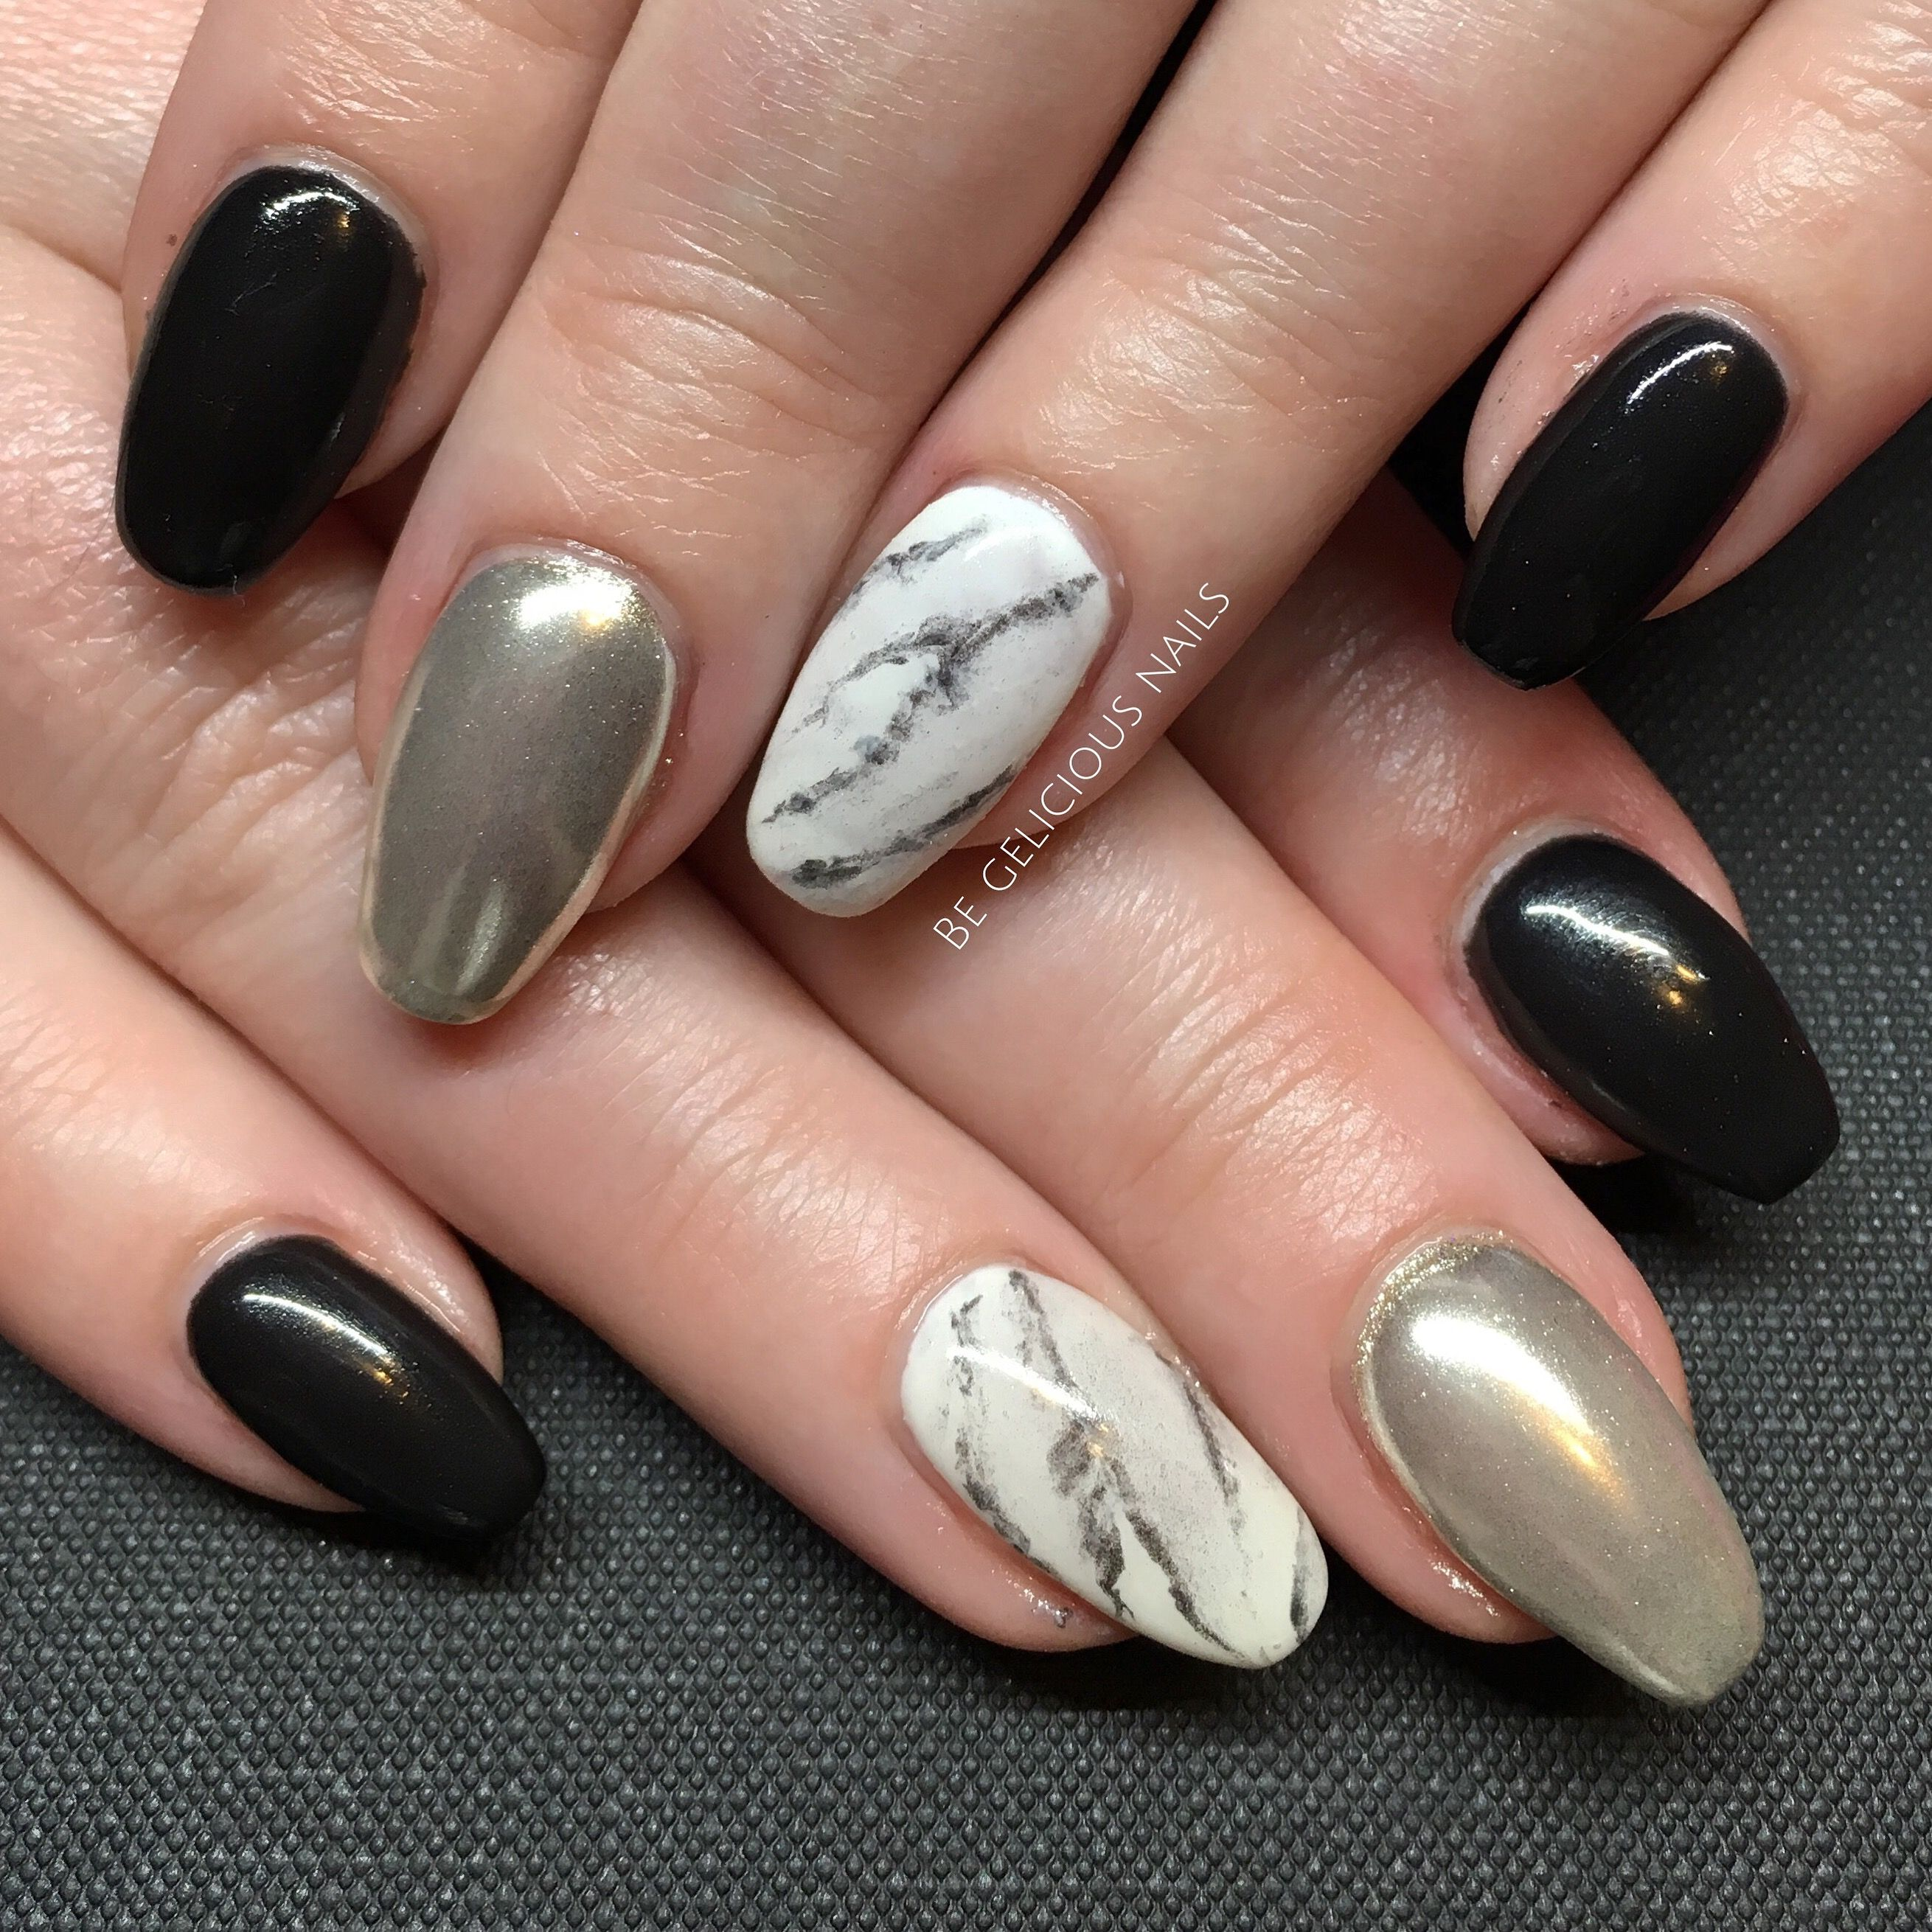 Calgel nails nail art nail design chrome marble black white calgel nails nail art nail design chrome marble black white prinsesfo Gallery